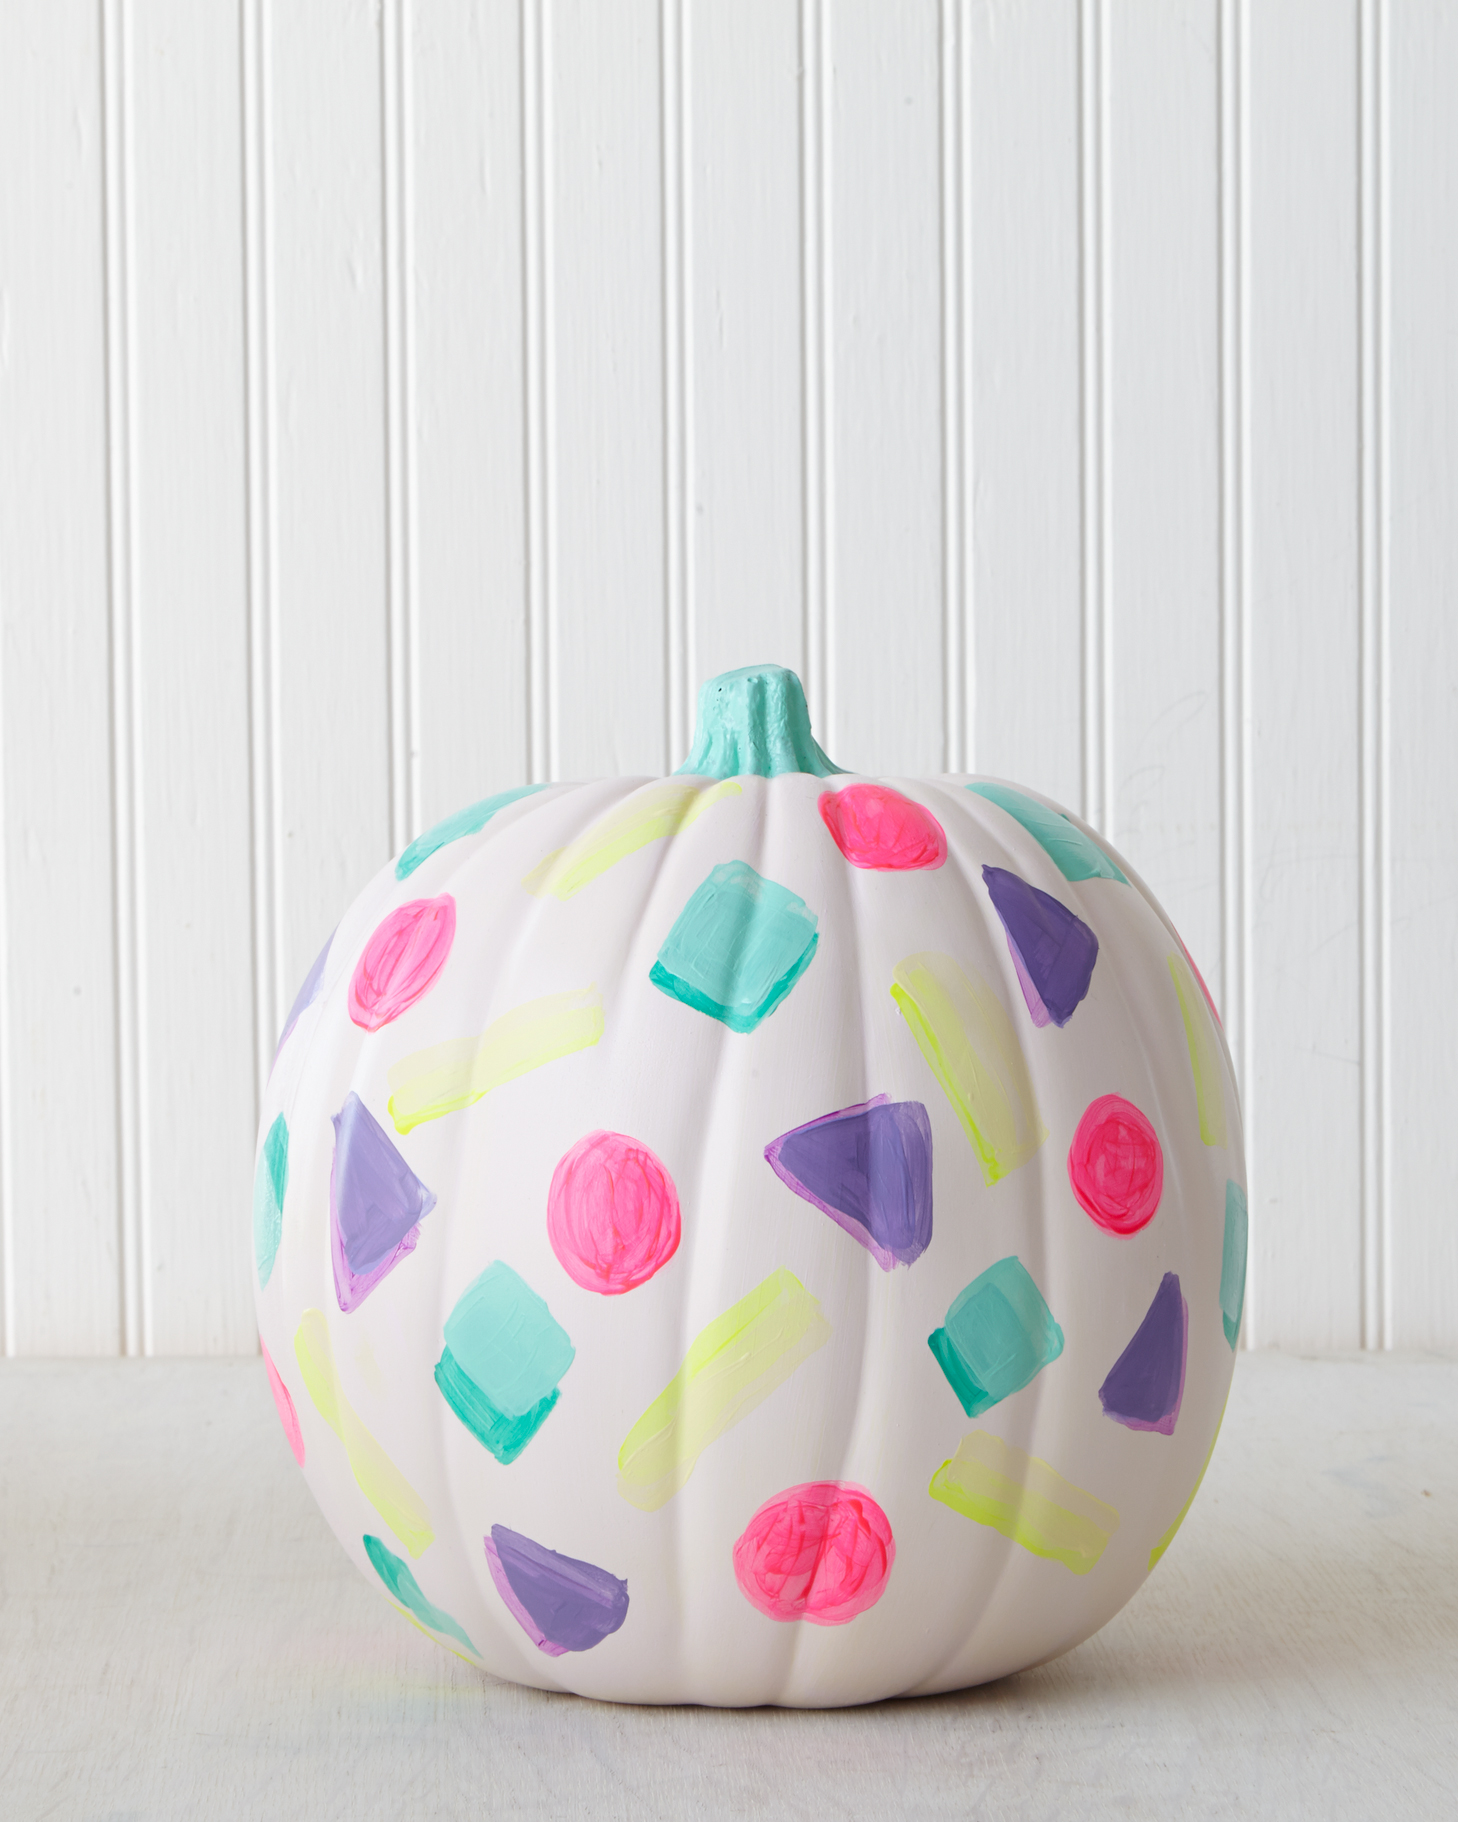 The '80s Pumpkin